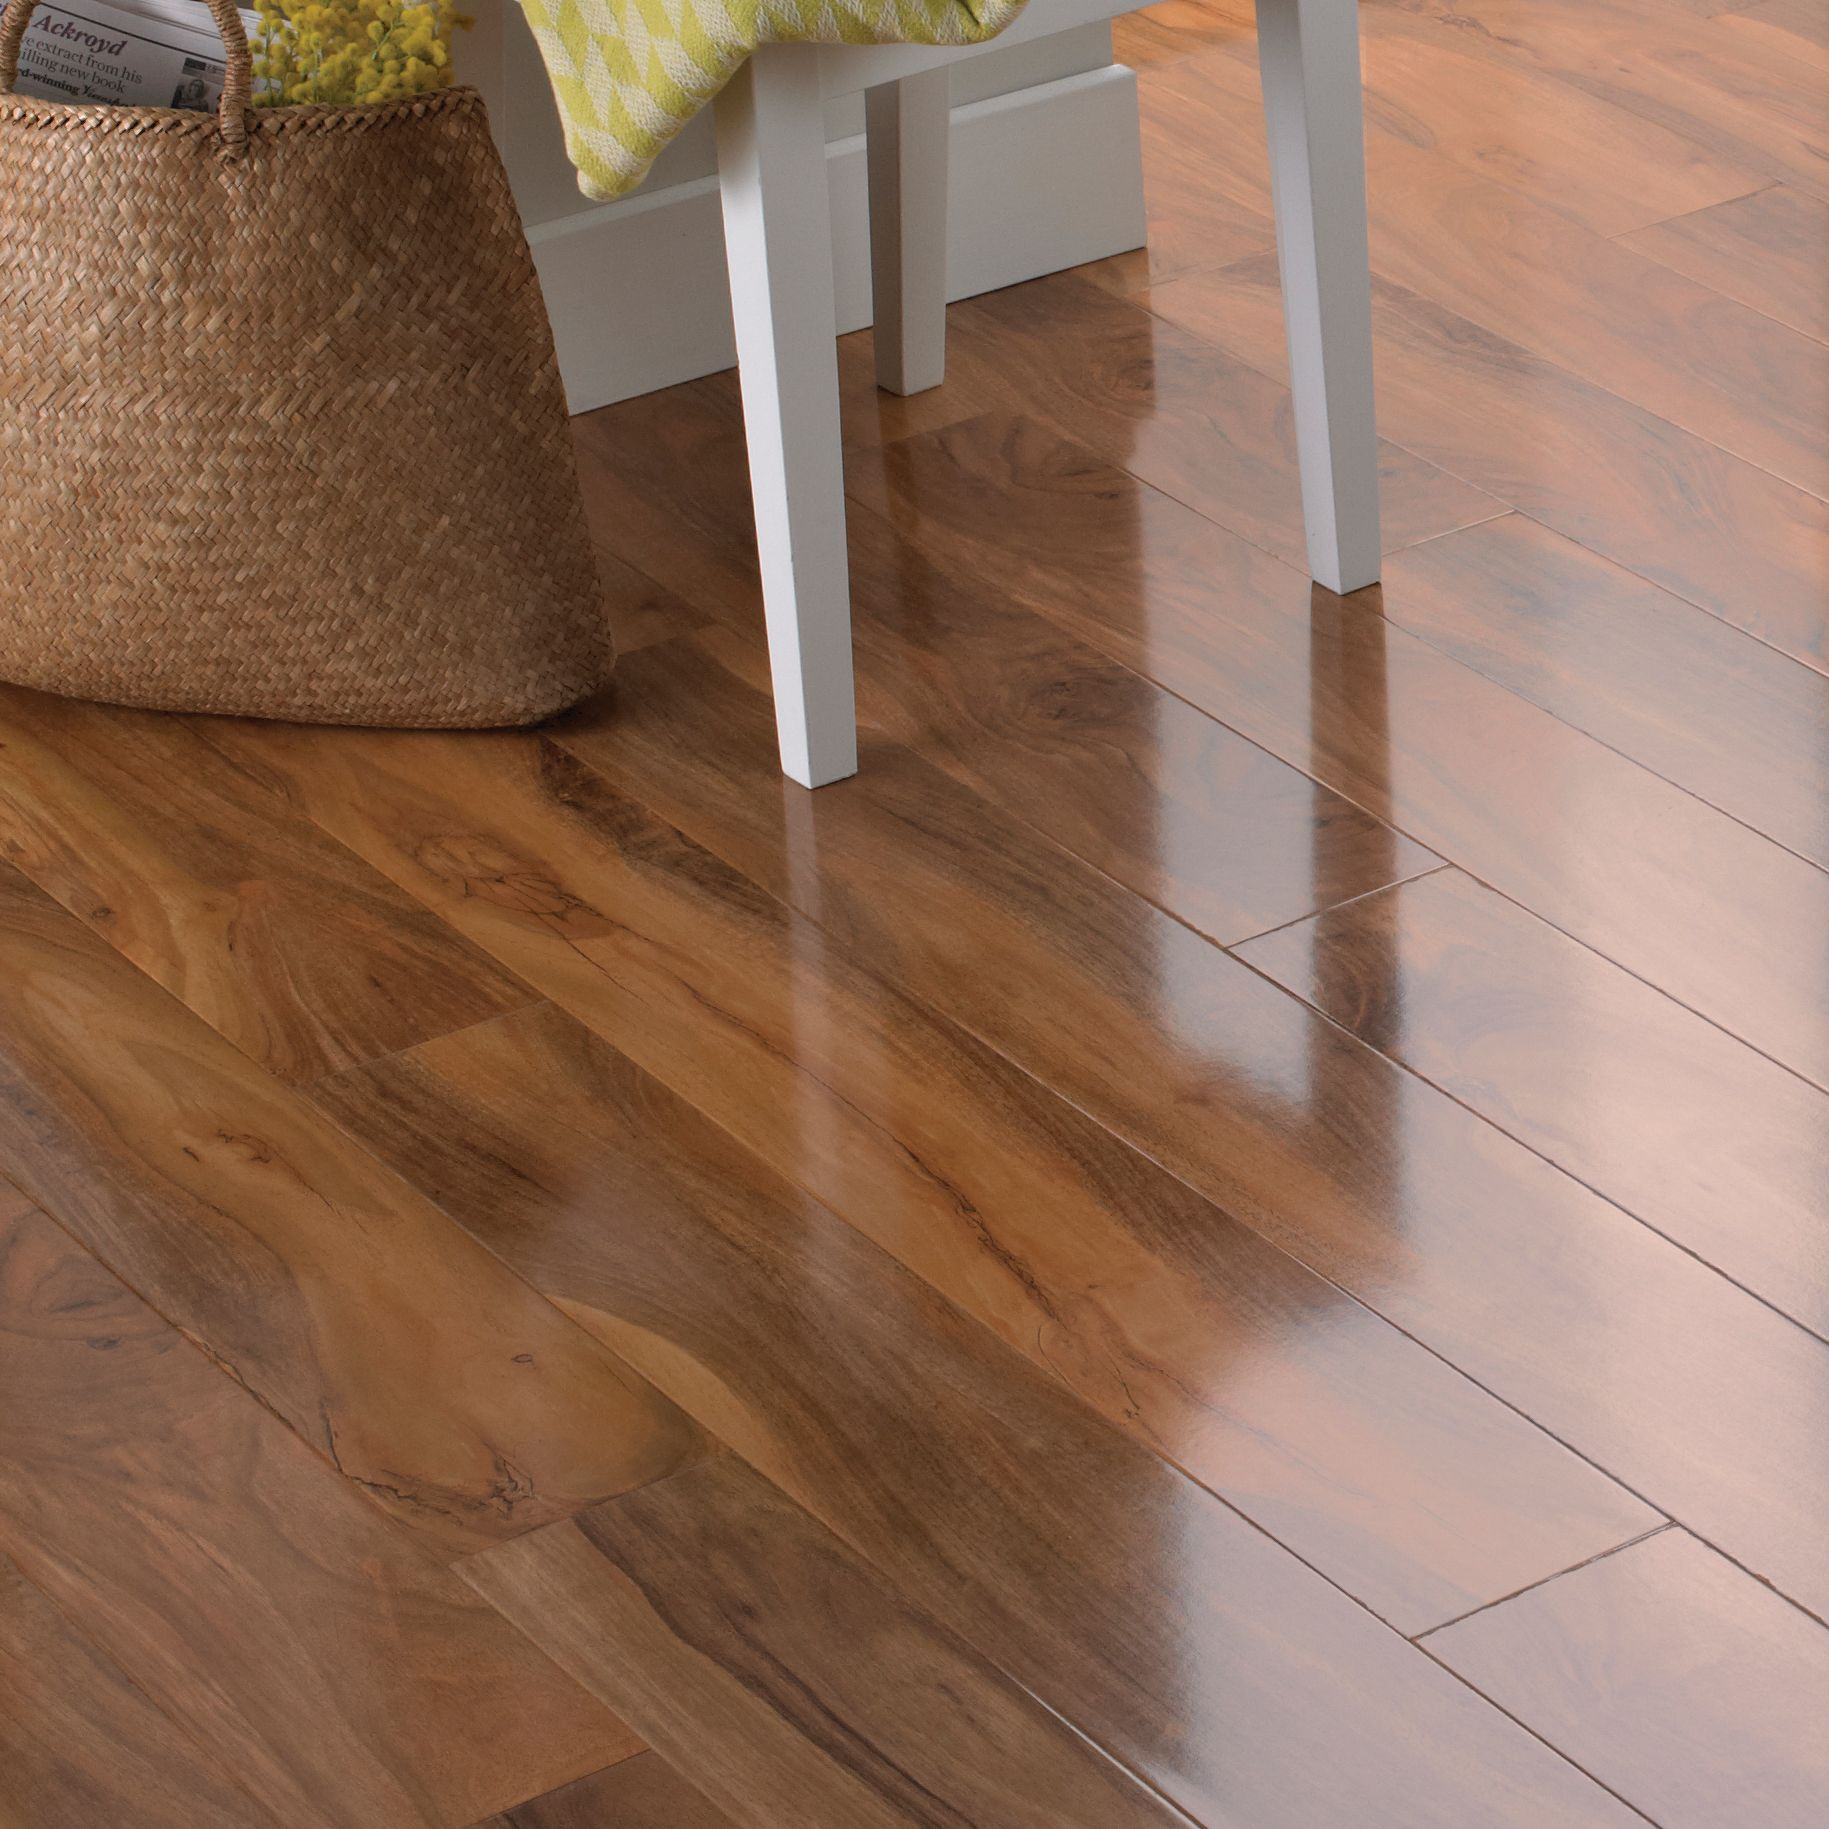 how to get laminate wood floors shiny